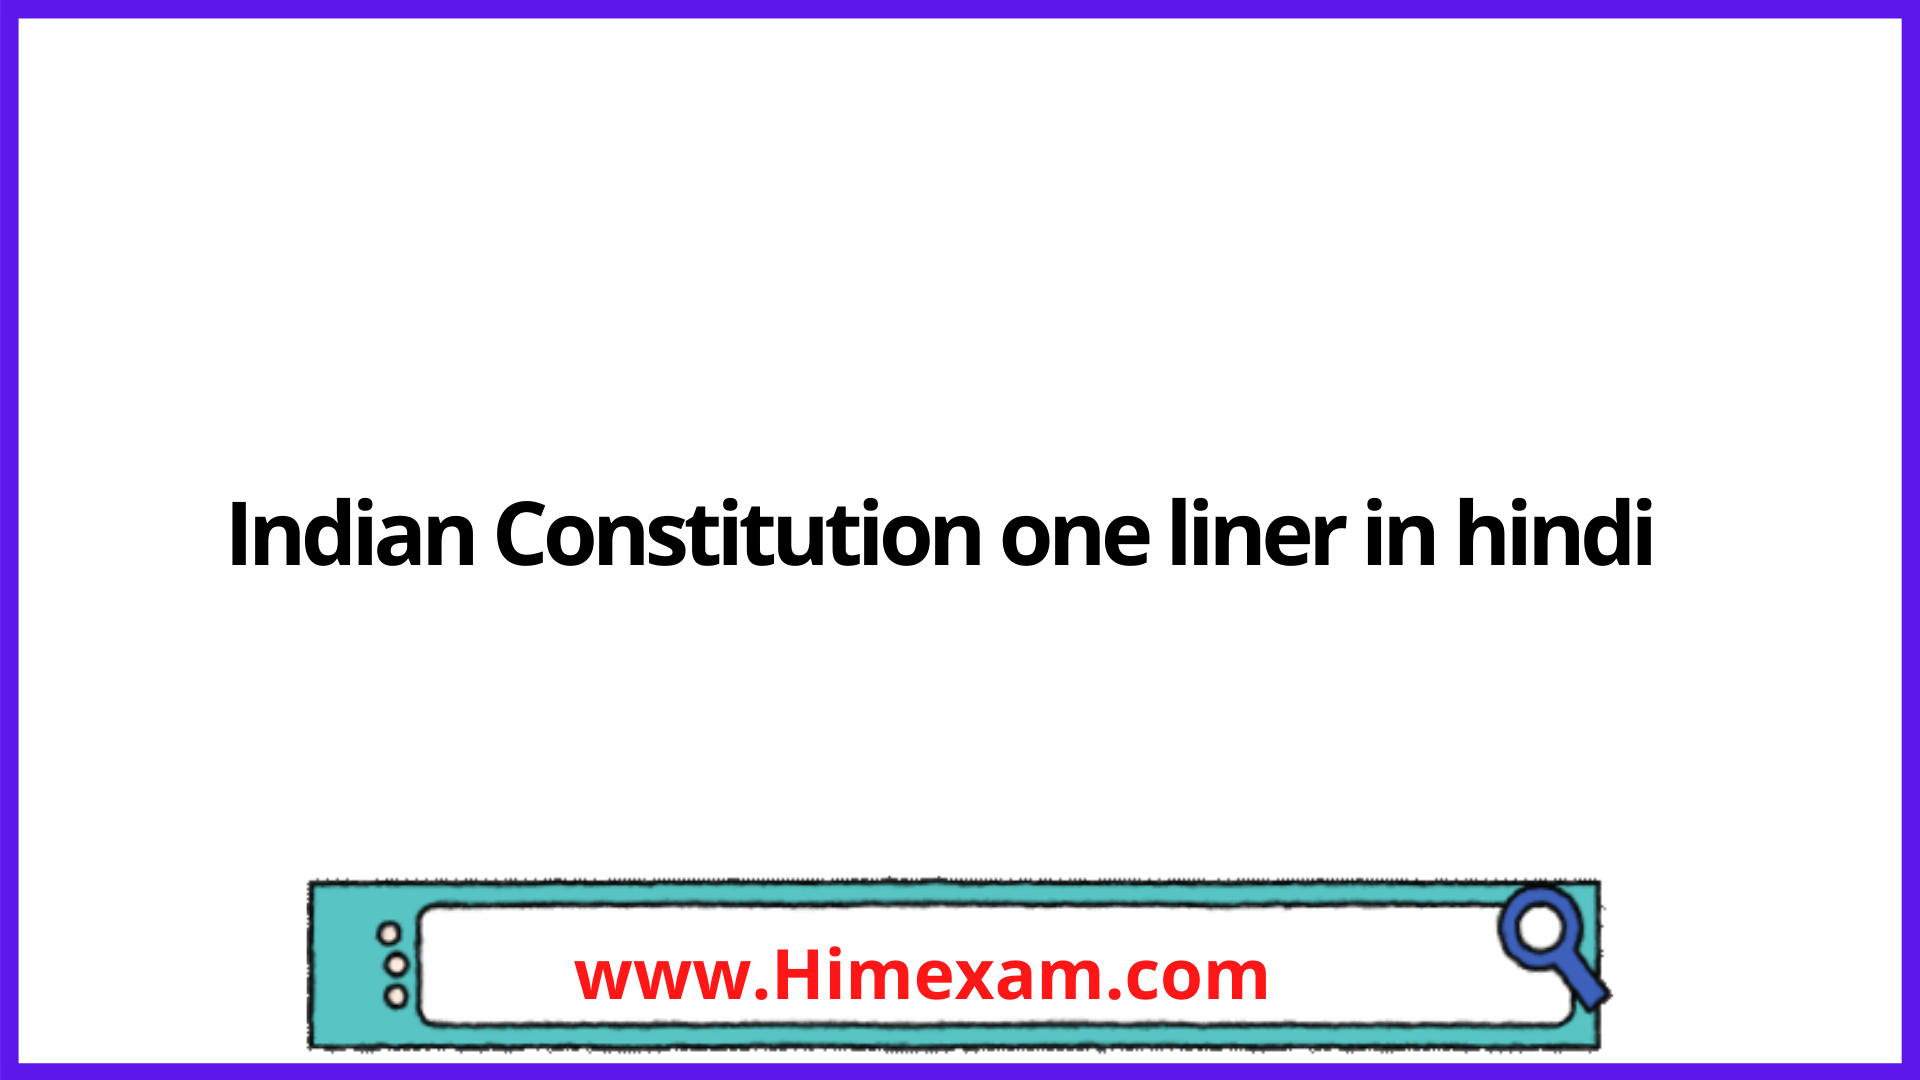 Indian Constitution one liner in hindi